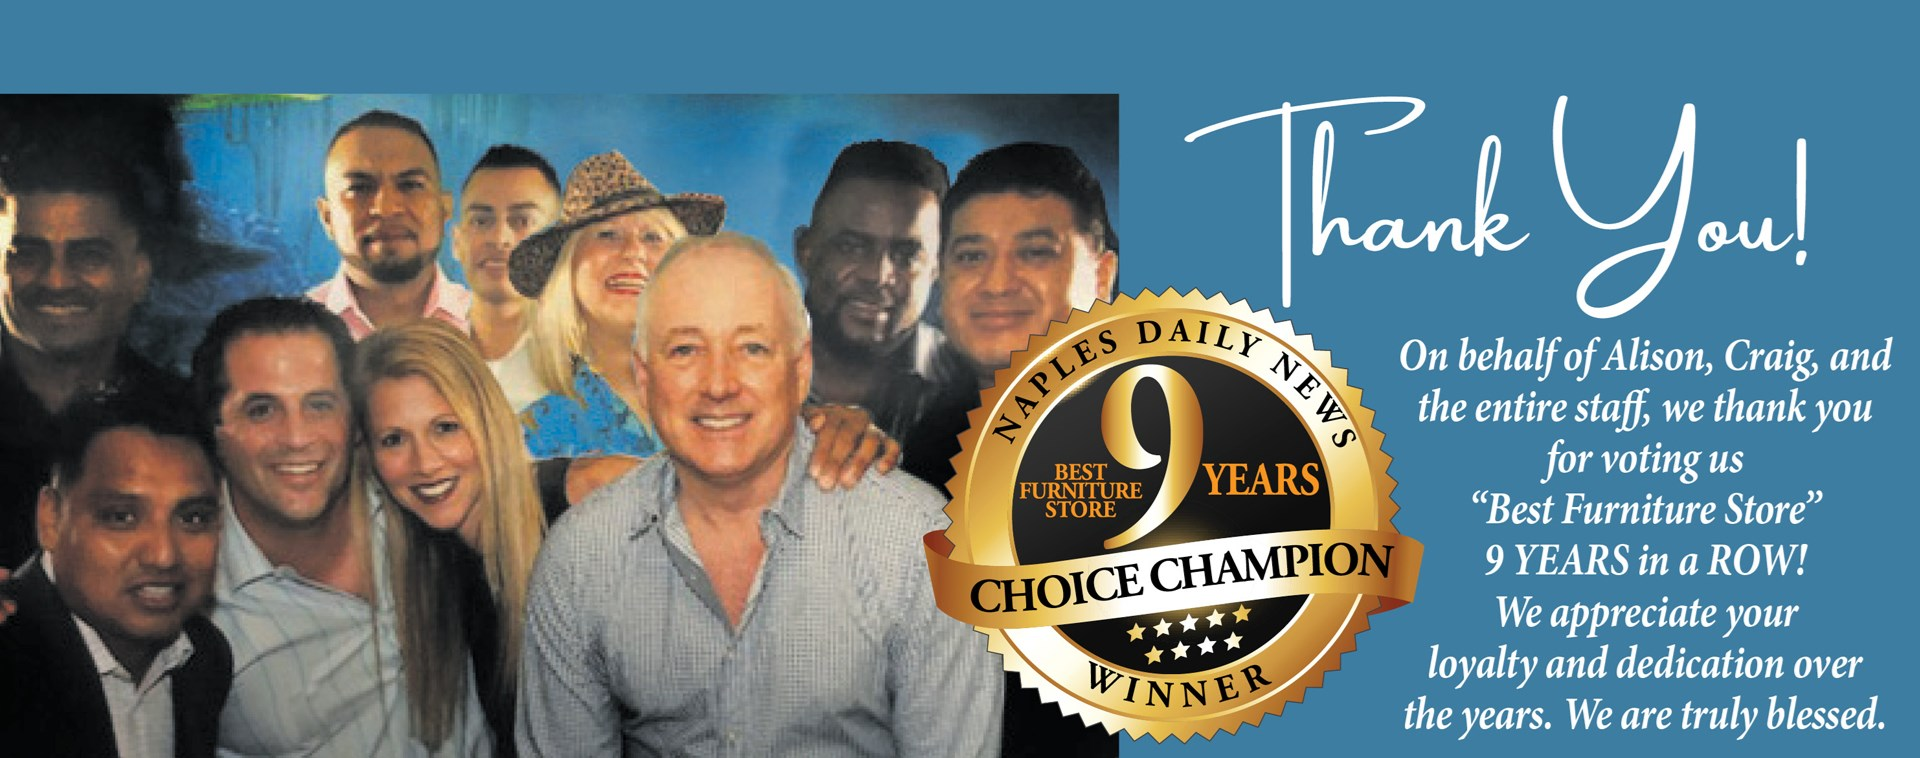 Thank You! 9 Years Choice Champion Best Furniture Store